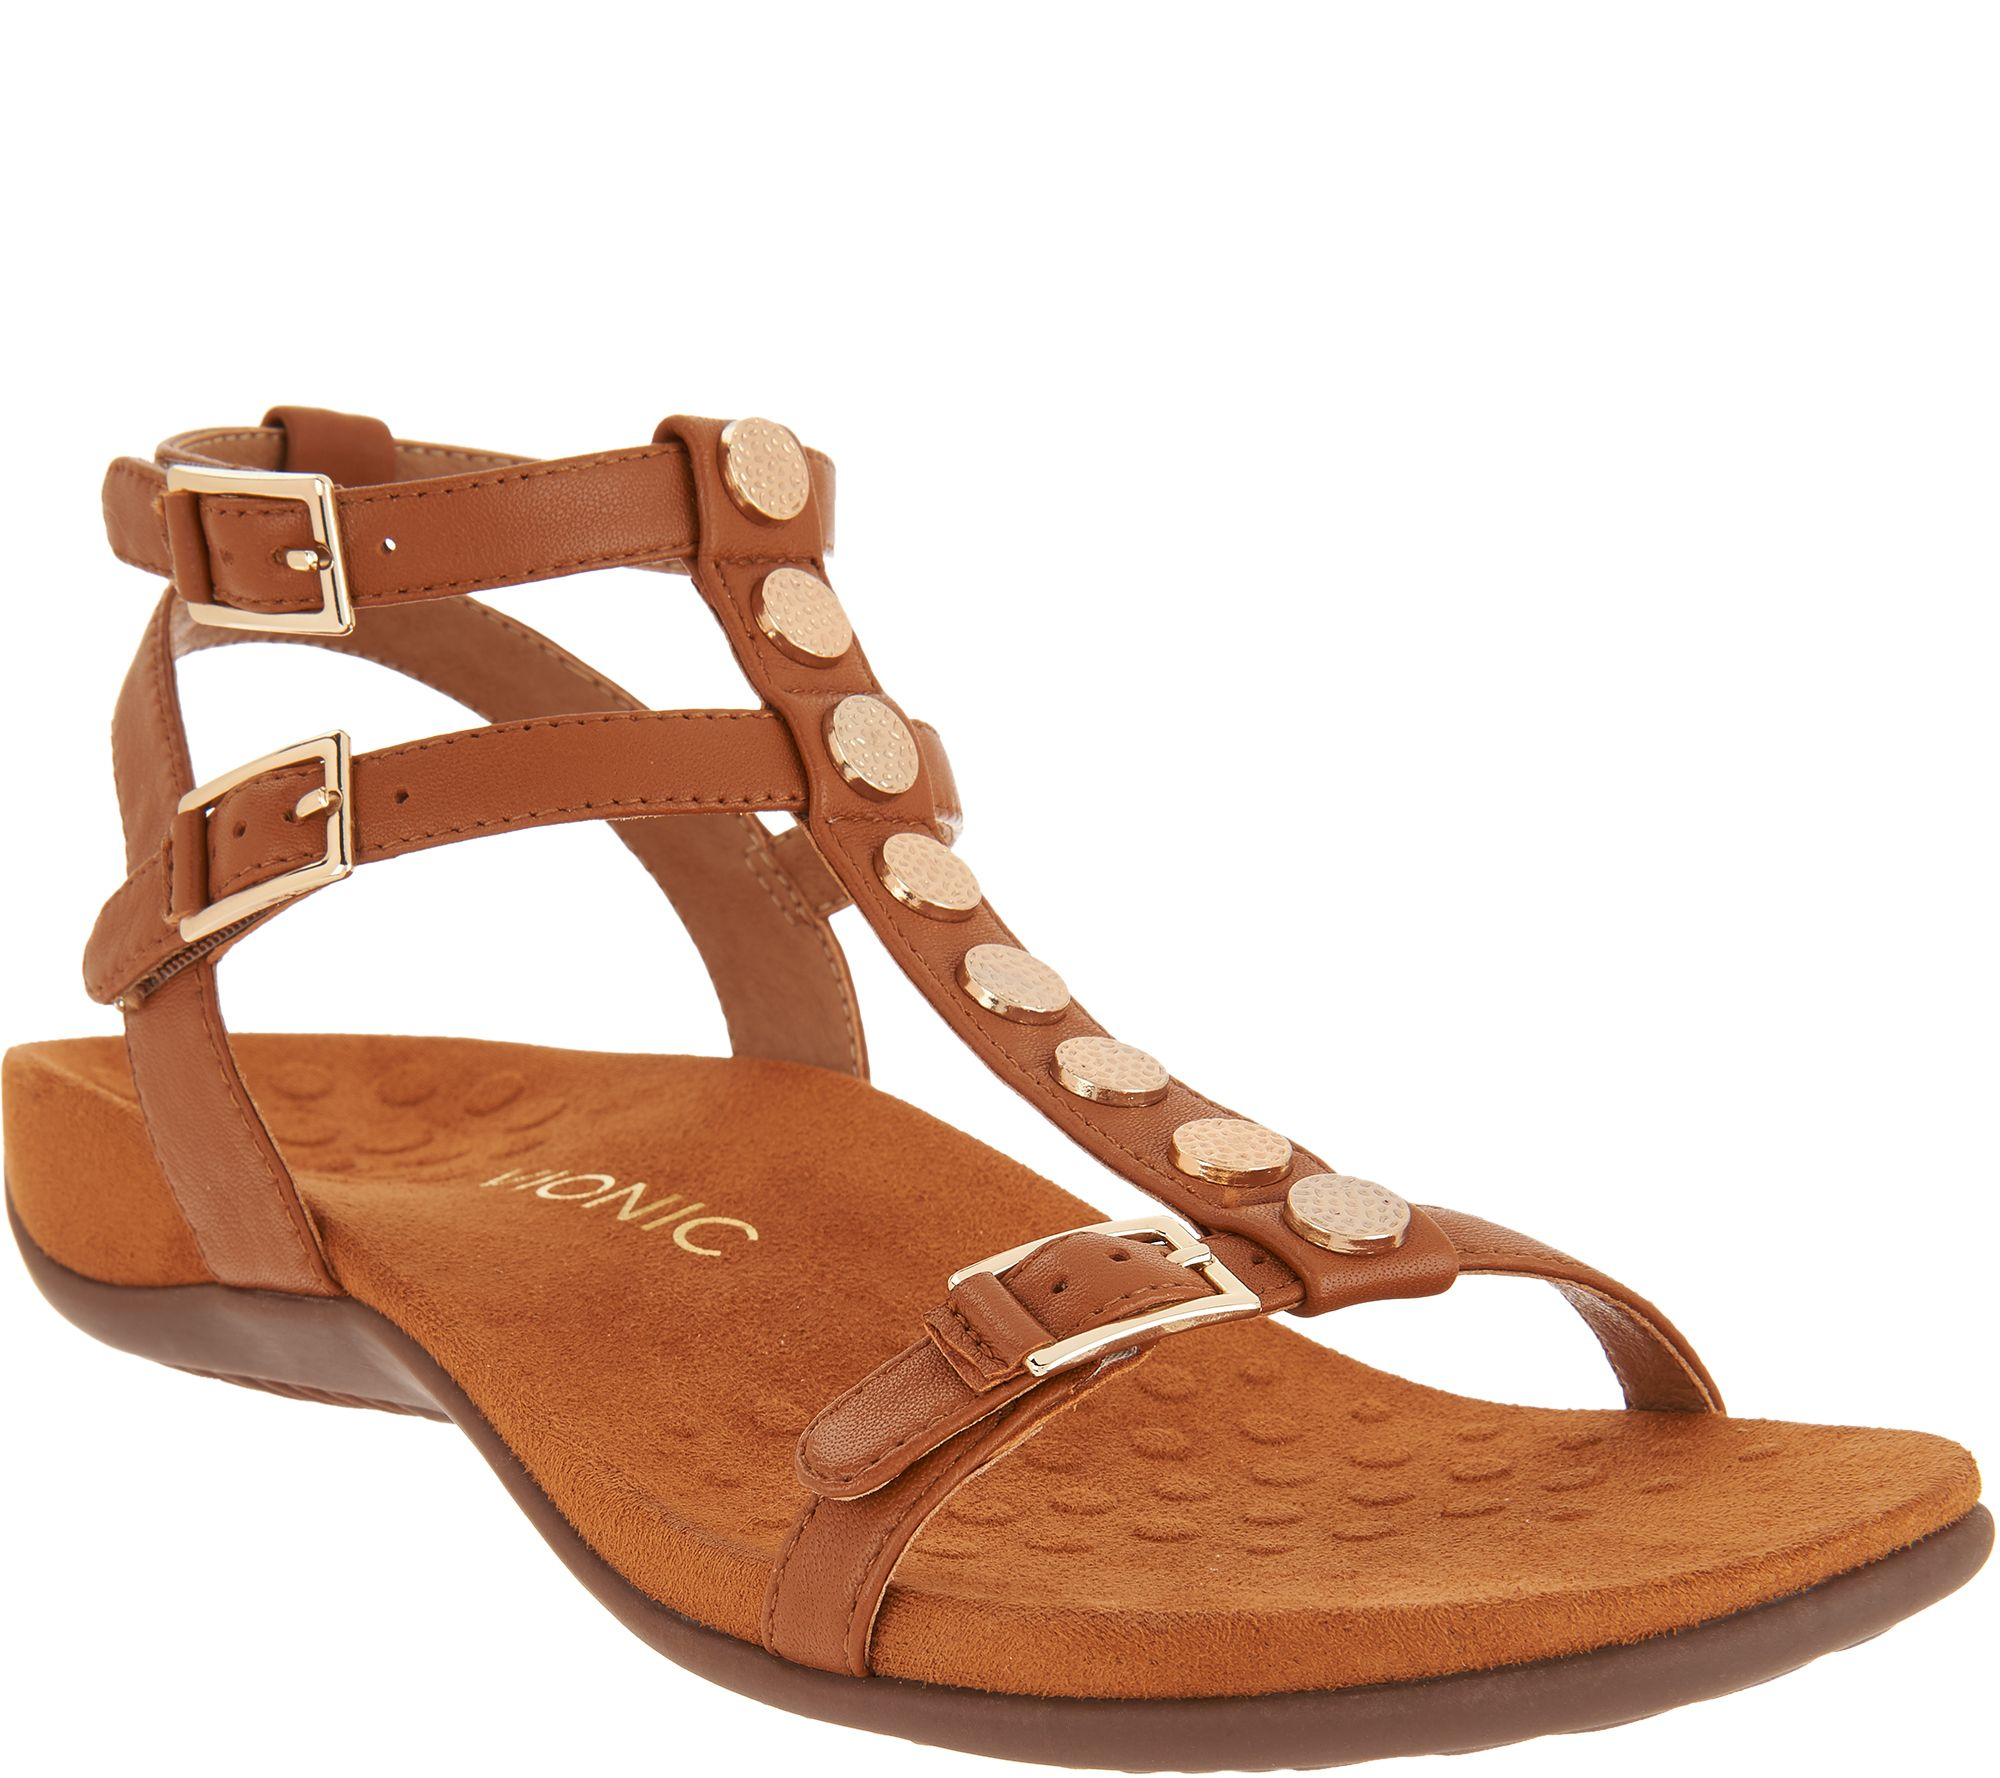 Vionic Leather Multi-Strap Sandals - Hailey latest collections online qTYo8mfFQD